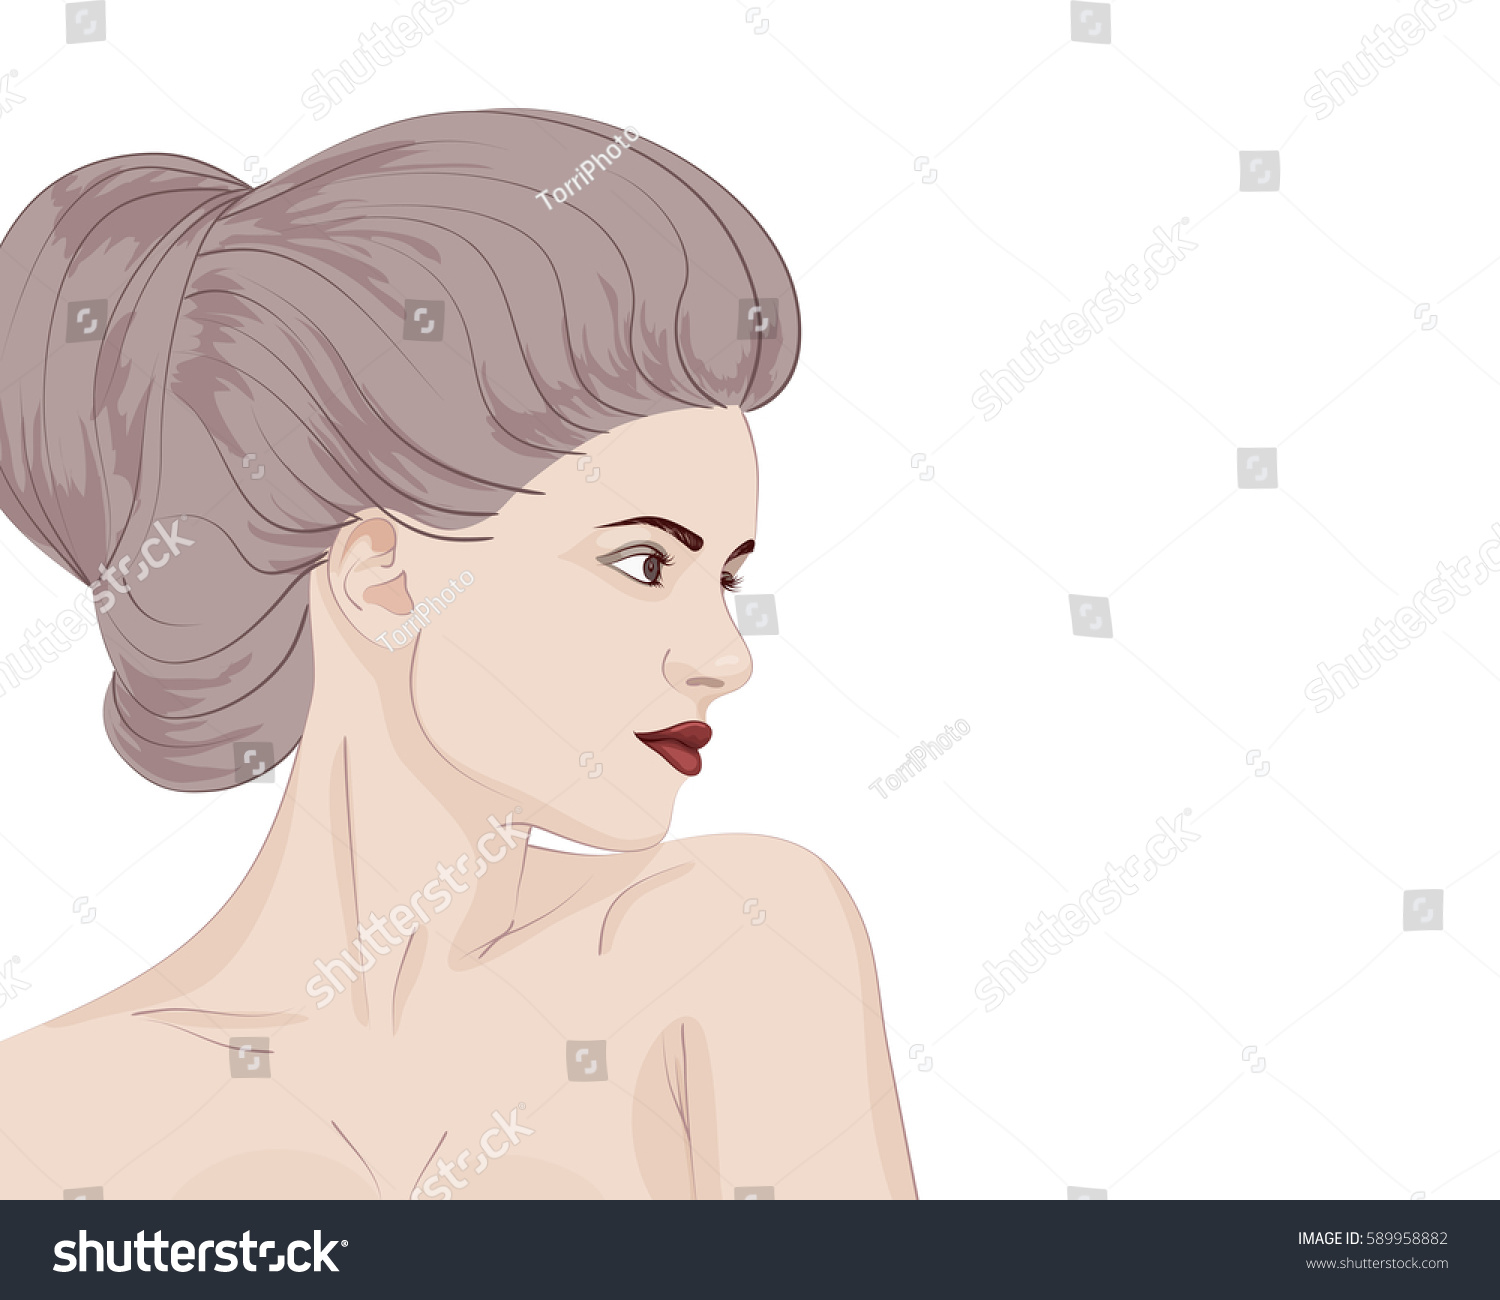 https://www.shutterstock.com/image-vector/beautiful-portrait-sensual-young-woman-bun-589958882